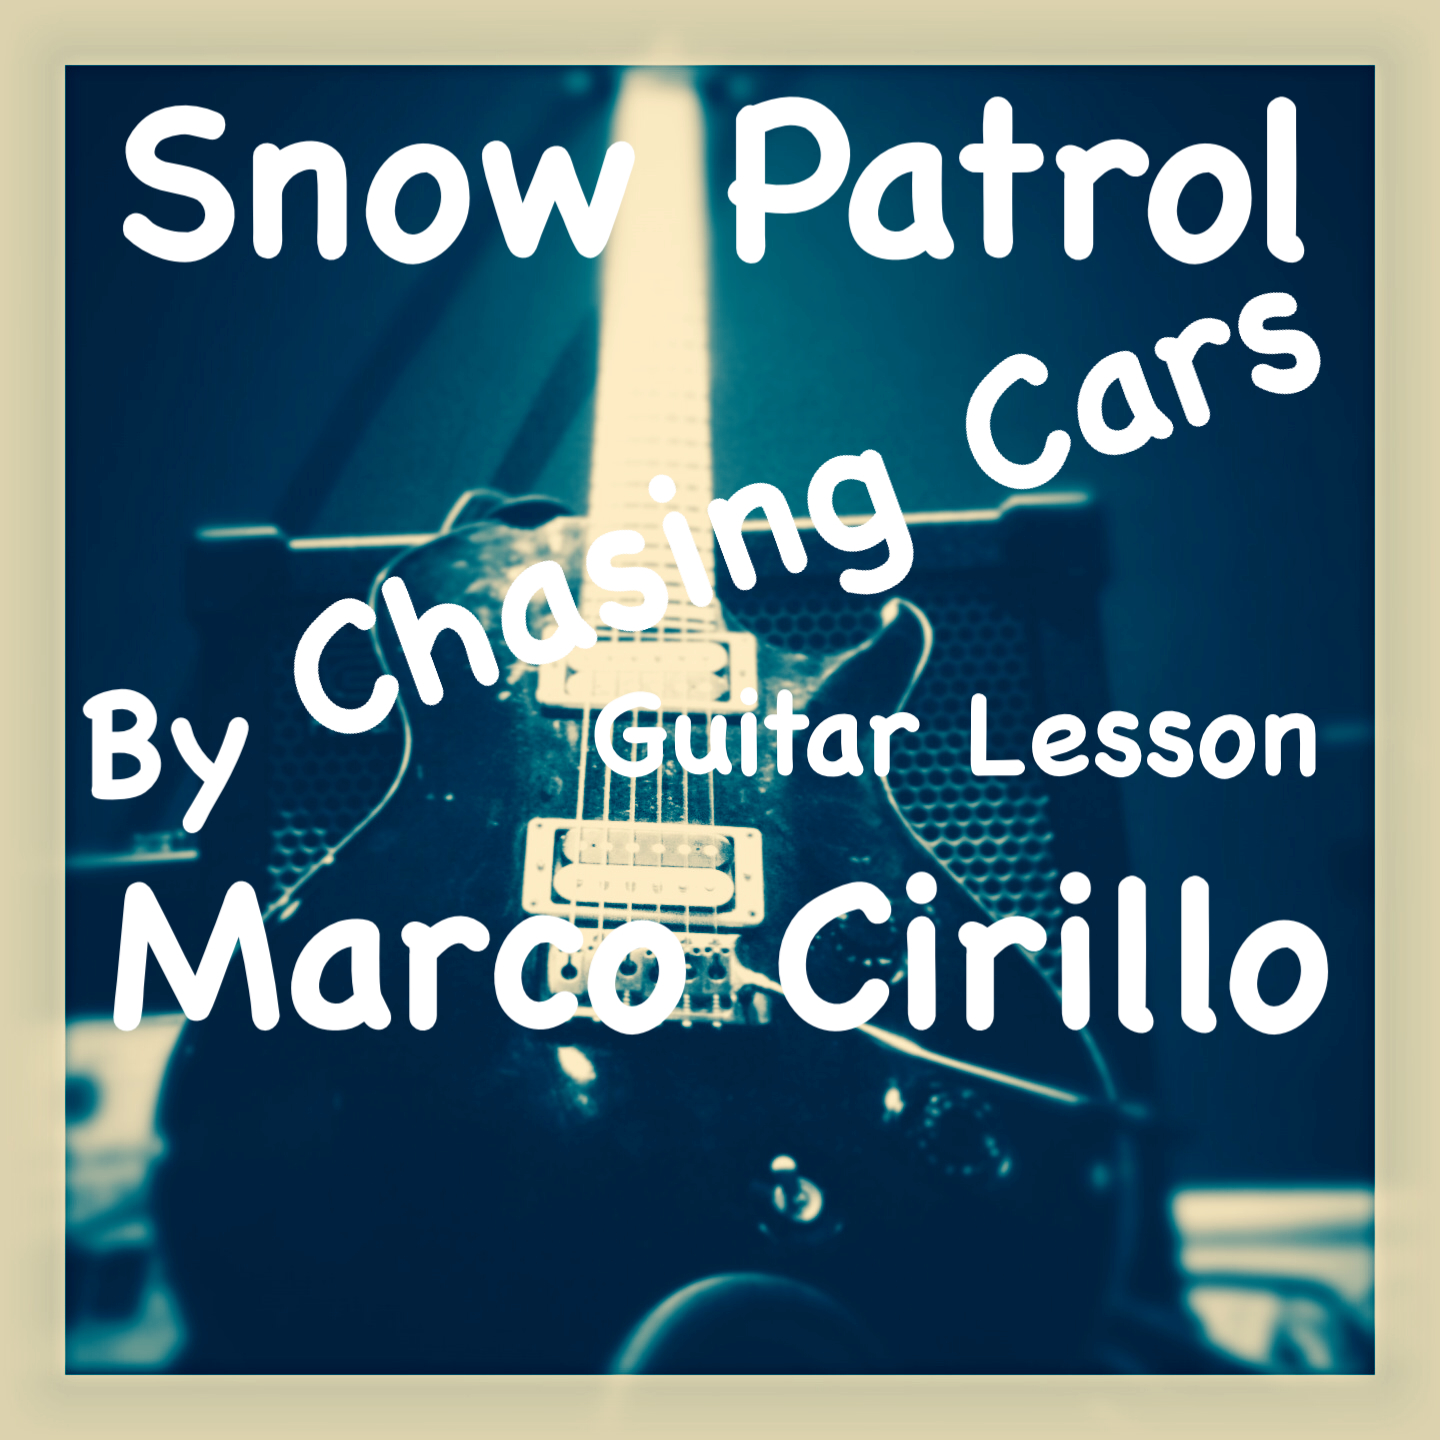 Snow Patrol Chasing Cars Guitar Lesson Chords And Tab Free Online